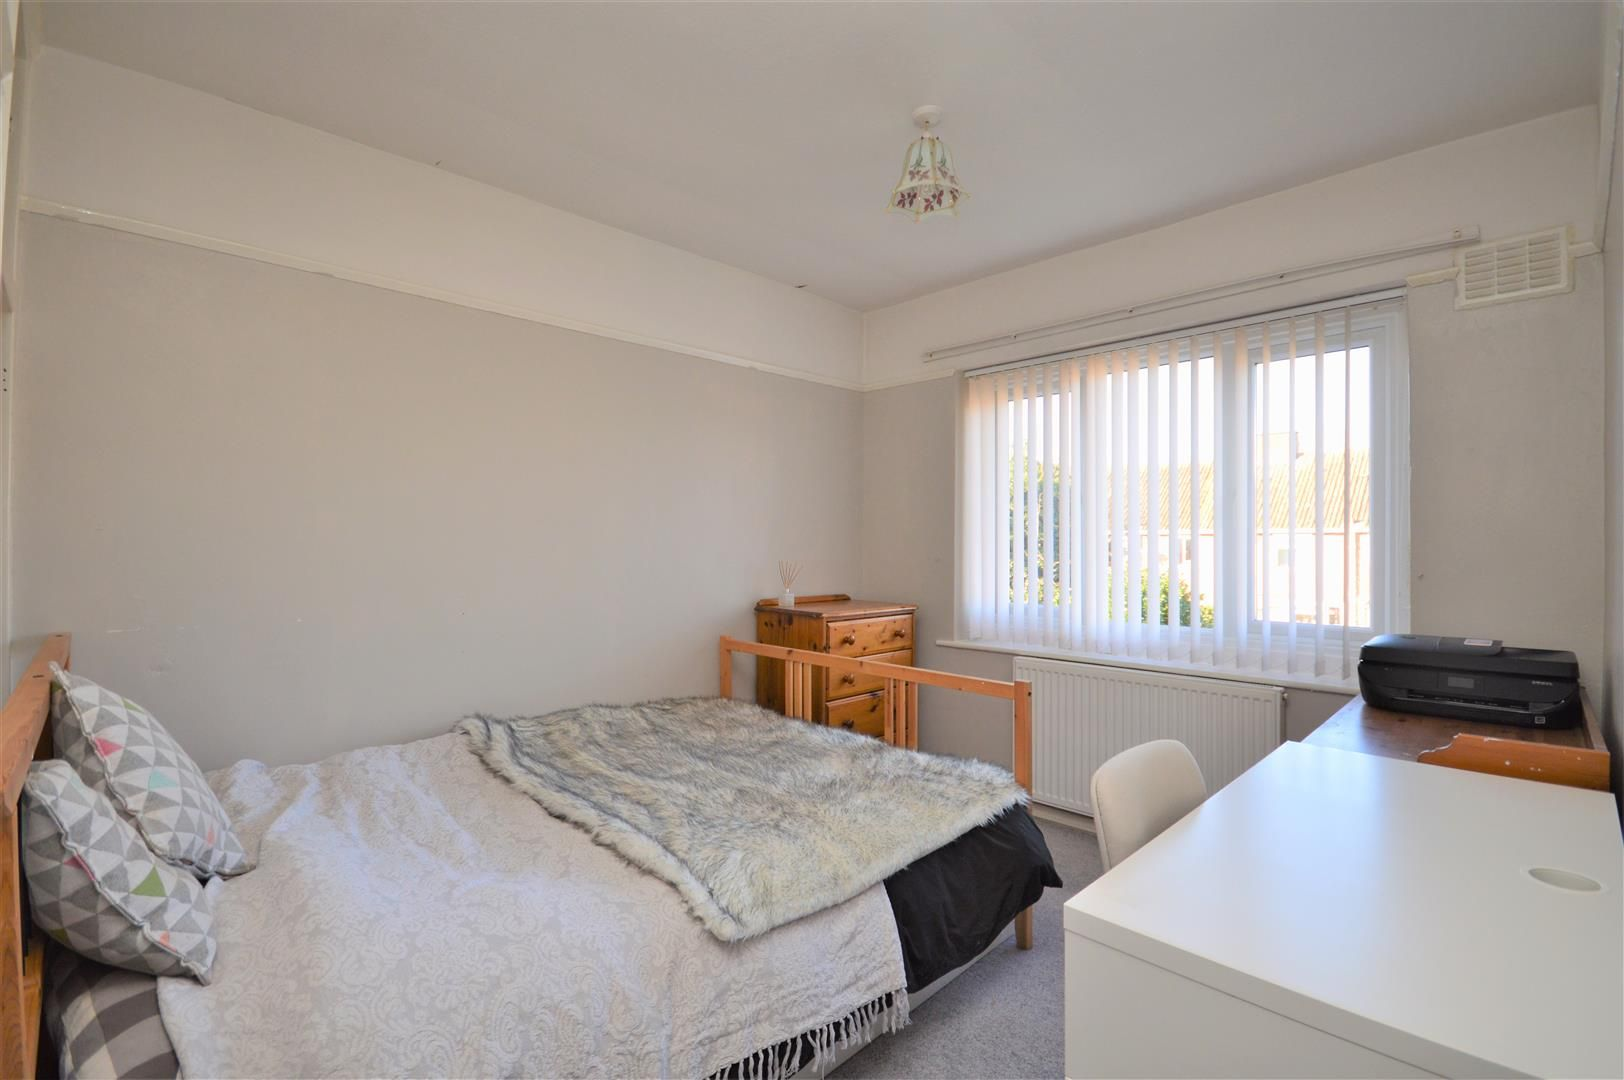 3 bed end-of-terrace for sale in Hereford 11